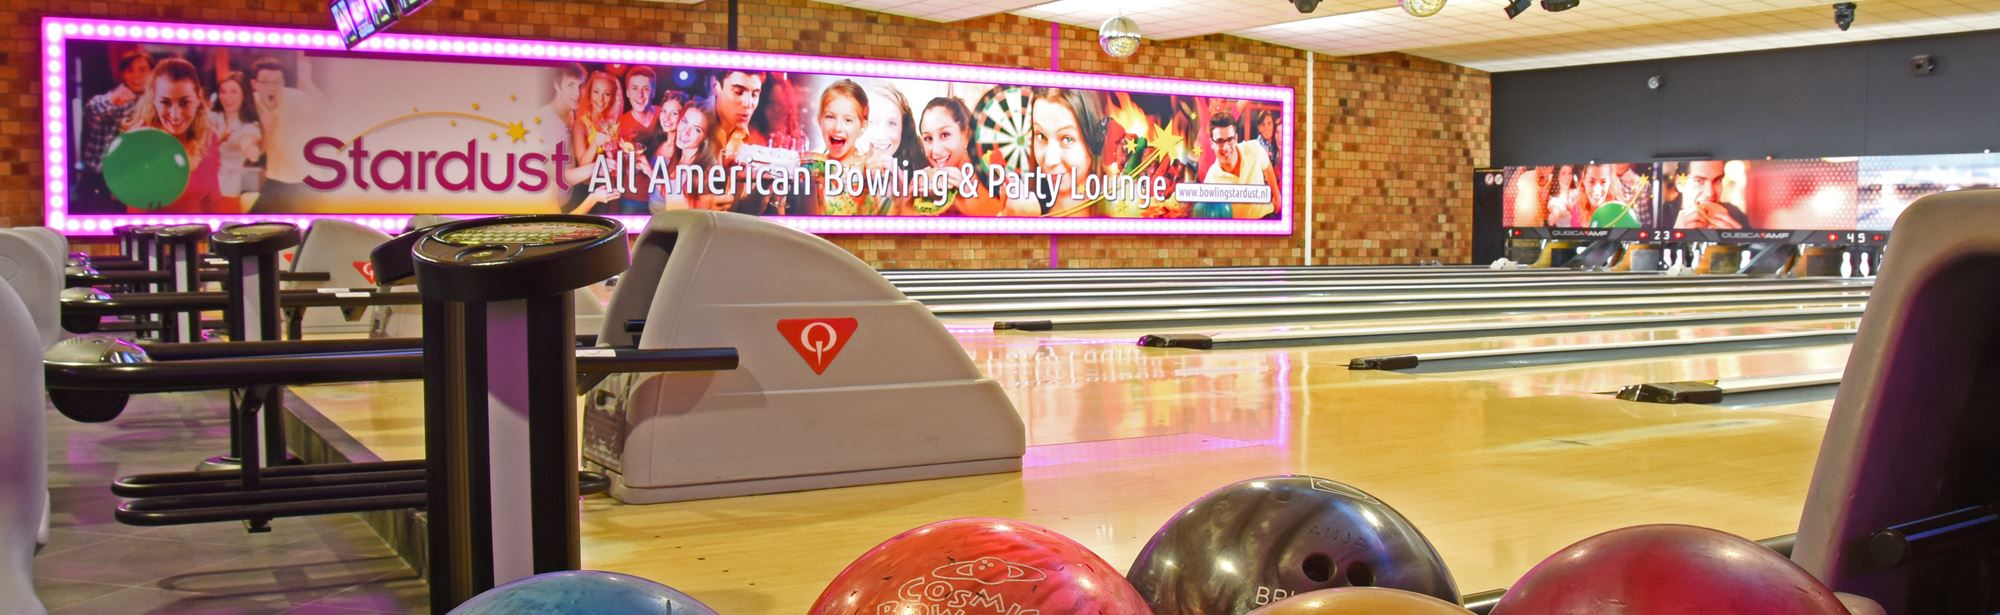 Stardust All American Bowling & Party Lounge Sittard